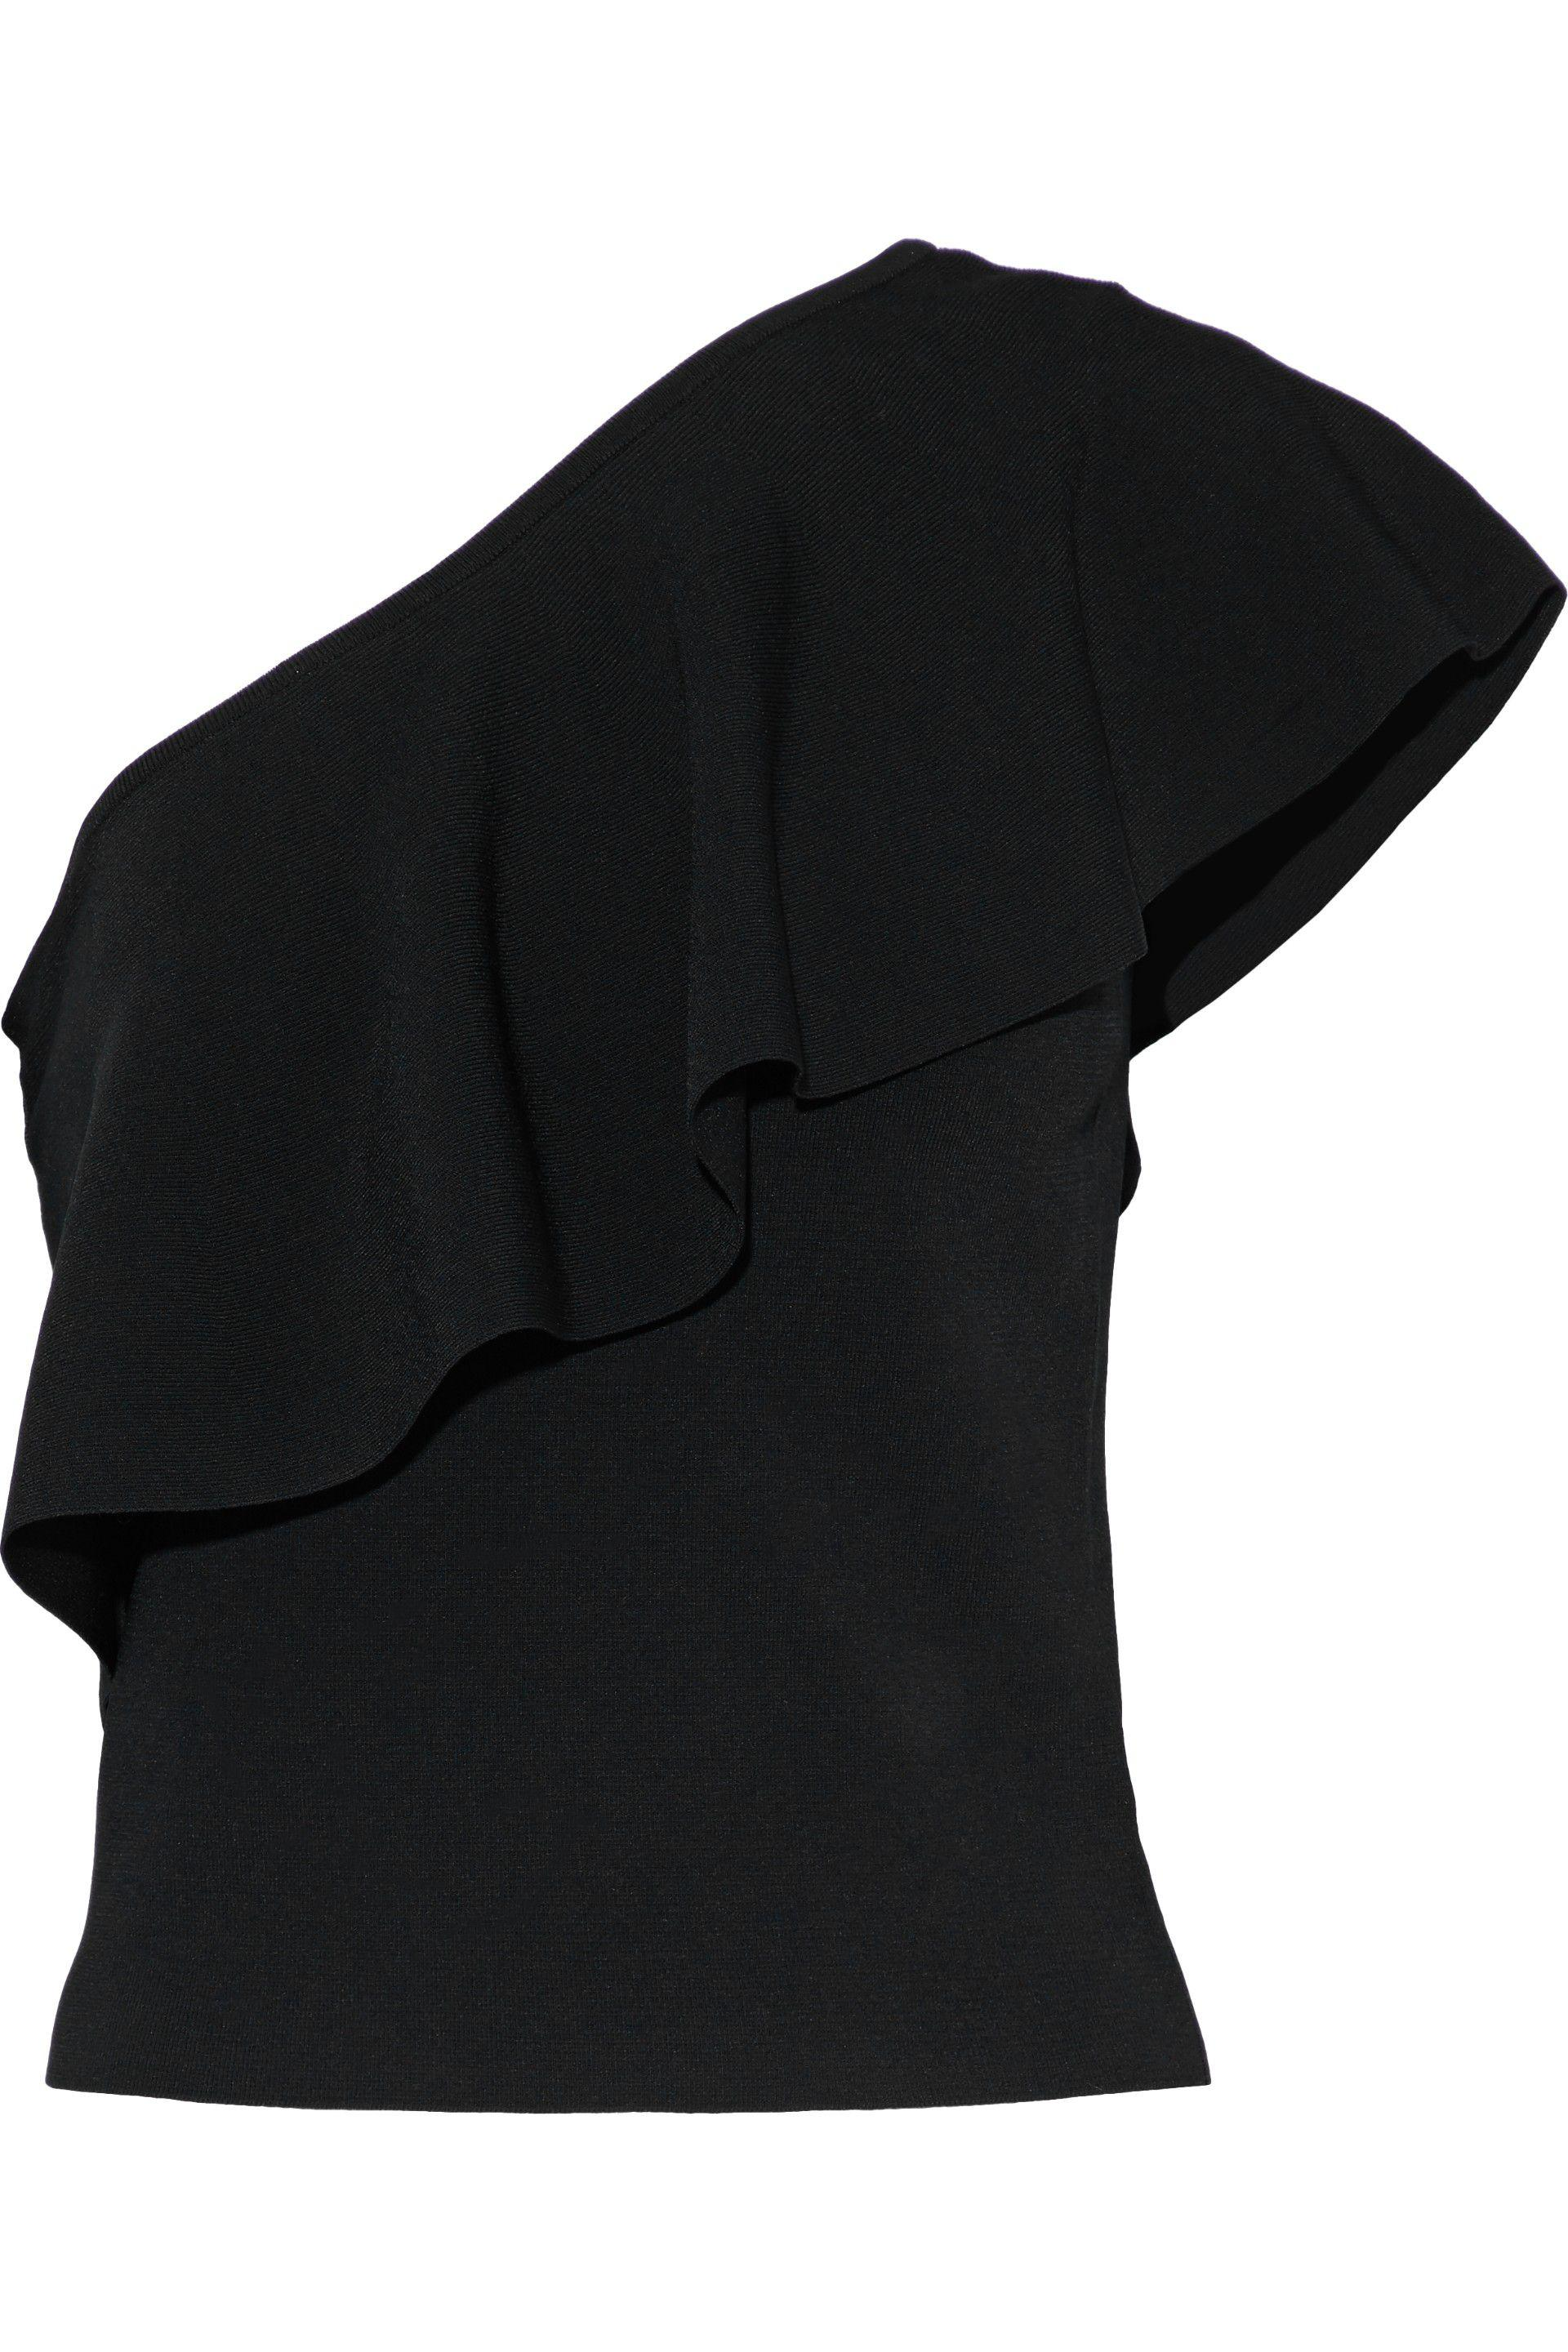 MILLY. Women's Black One-shoulder Ruffled Stretch-knit Top